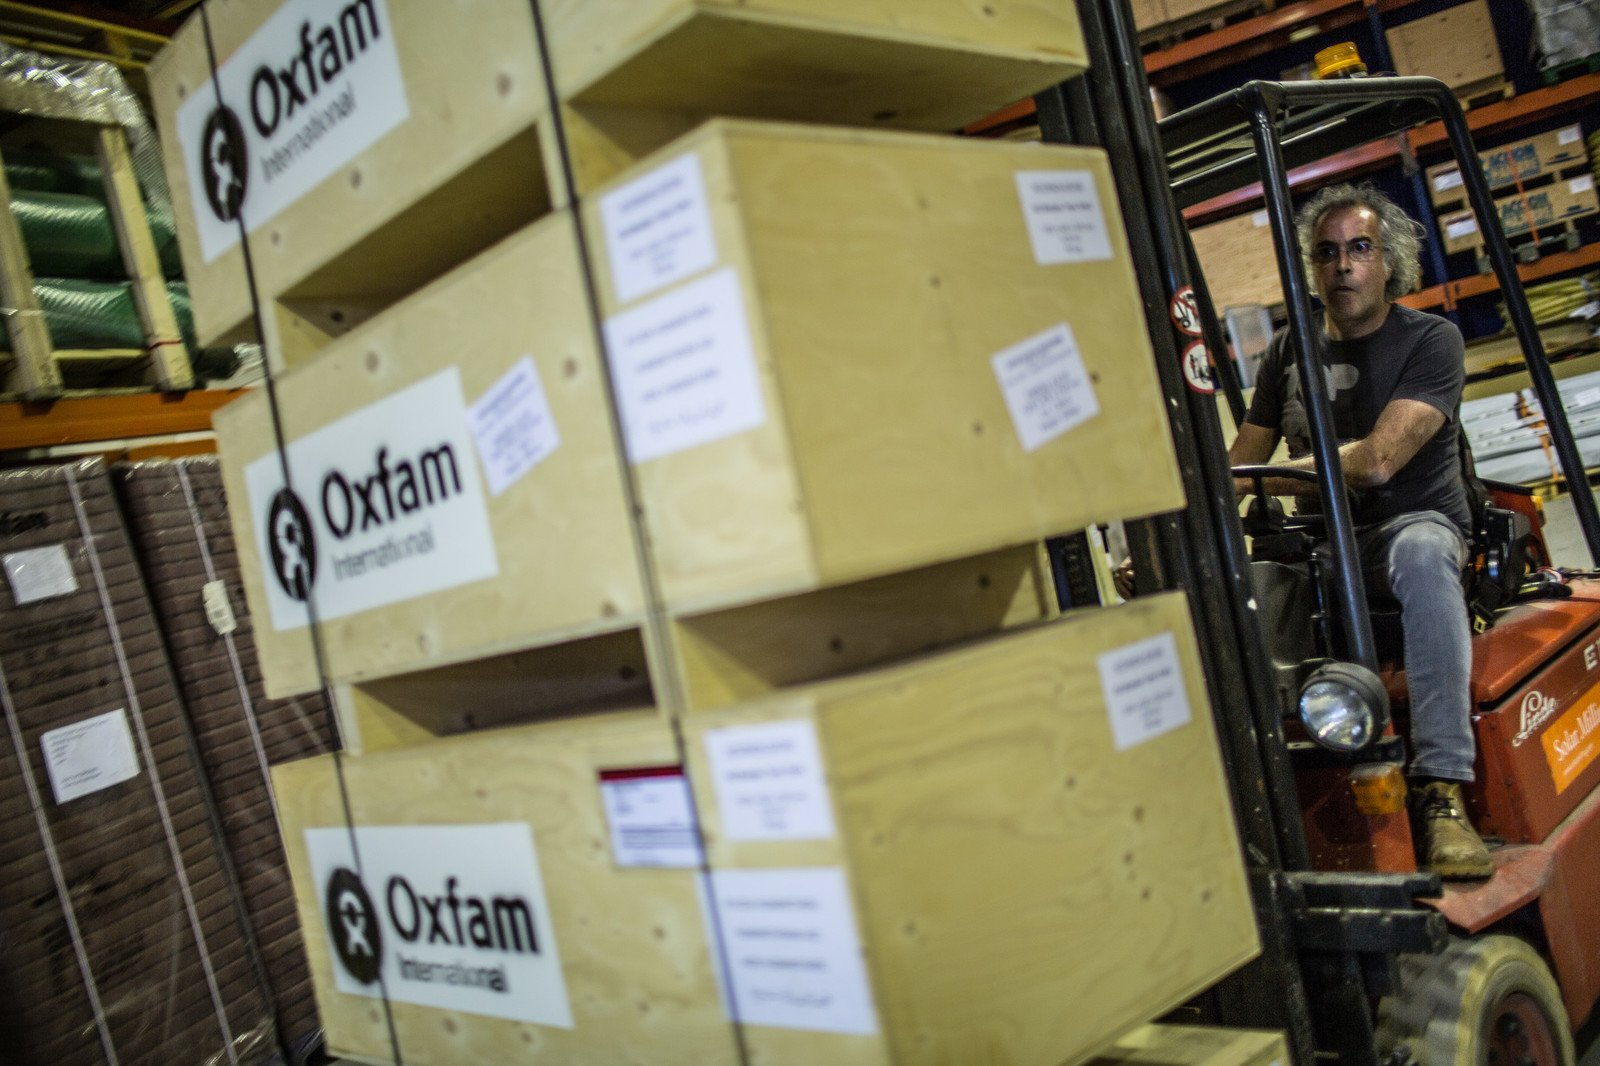 More than five tonnes of water and sanitation materials have been dispatched from Oxfam's warehouse in Spain to help those affected in Nepal. (Photo: Pablo Tosco / Oxfam)